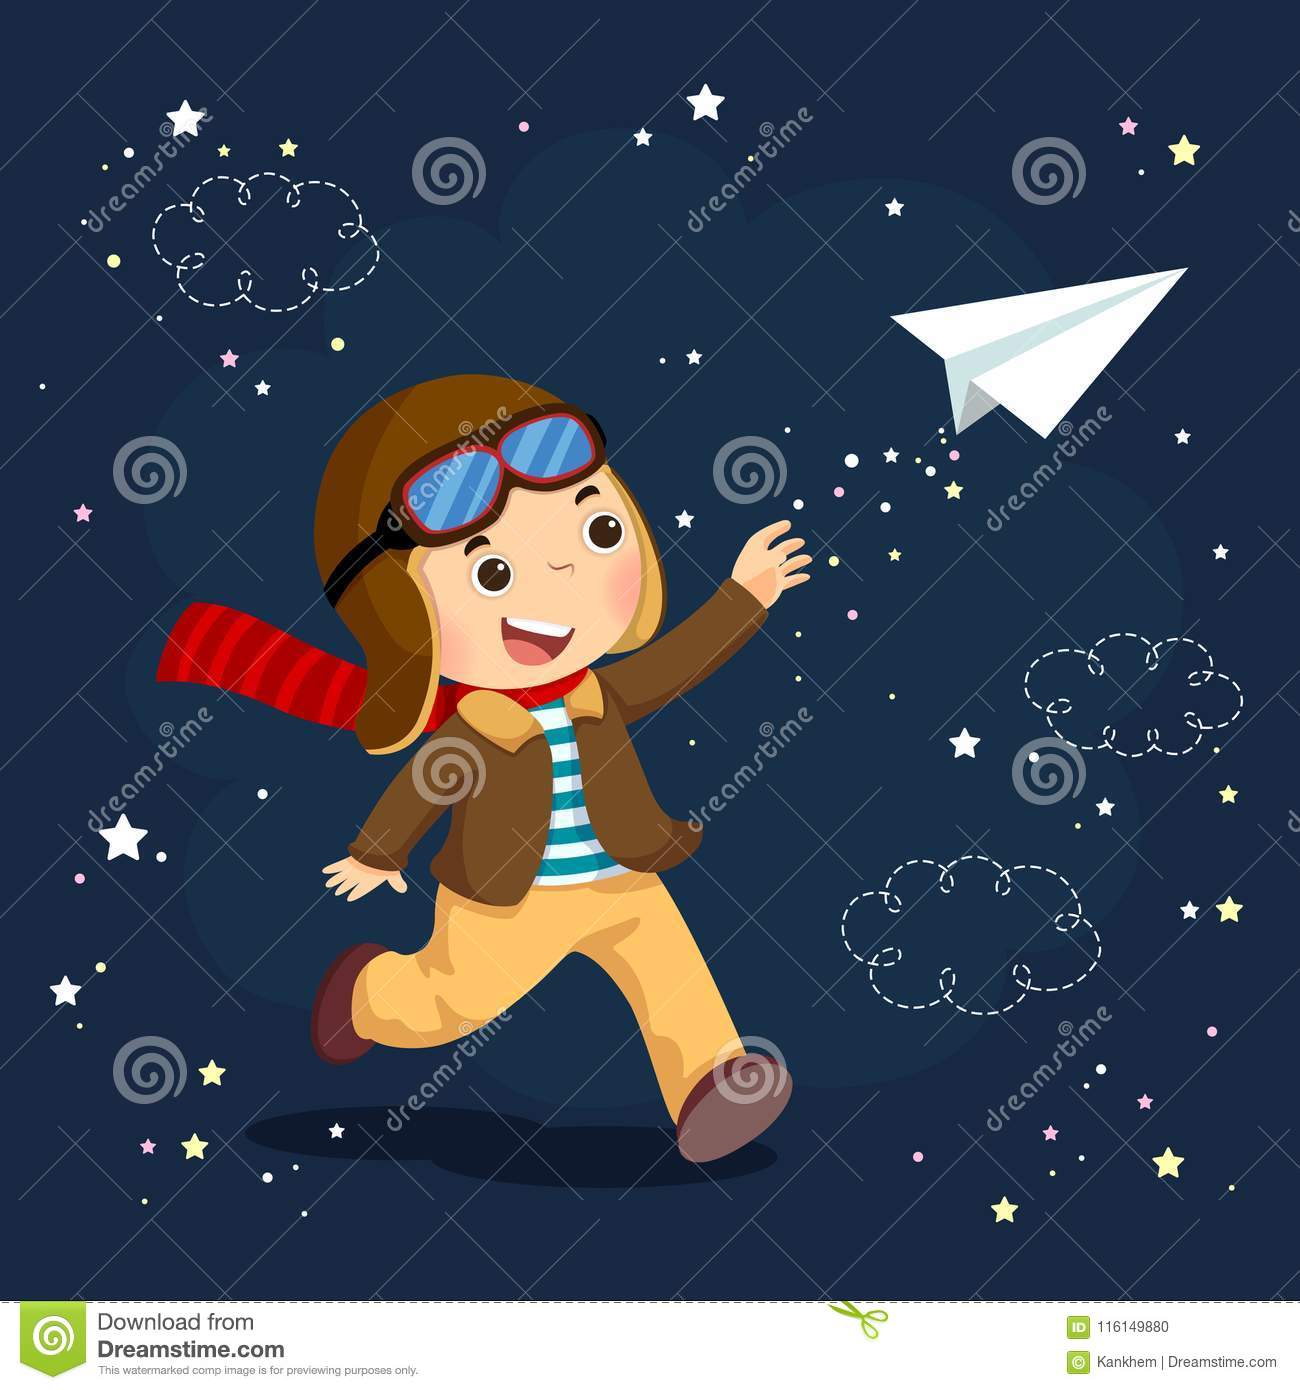 Little boy wearing helmet and dreams of becoming an aviator while flying a paper plane